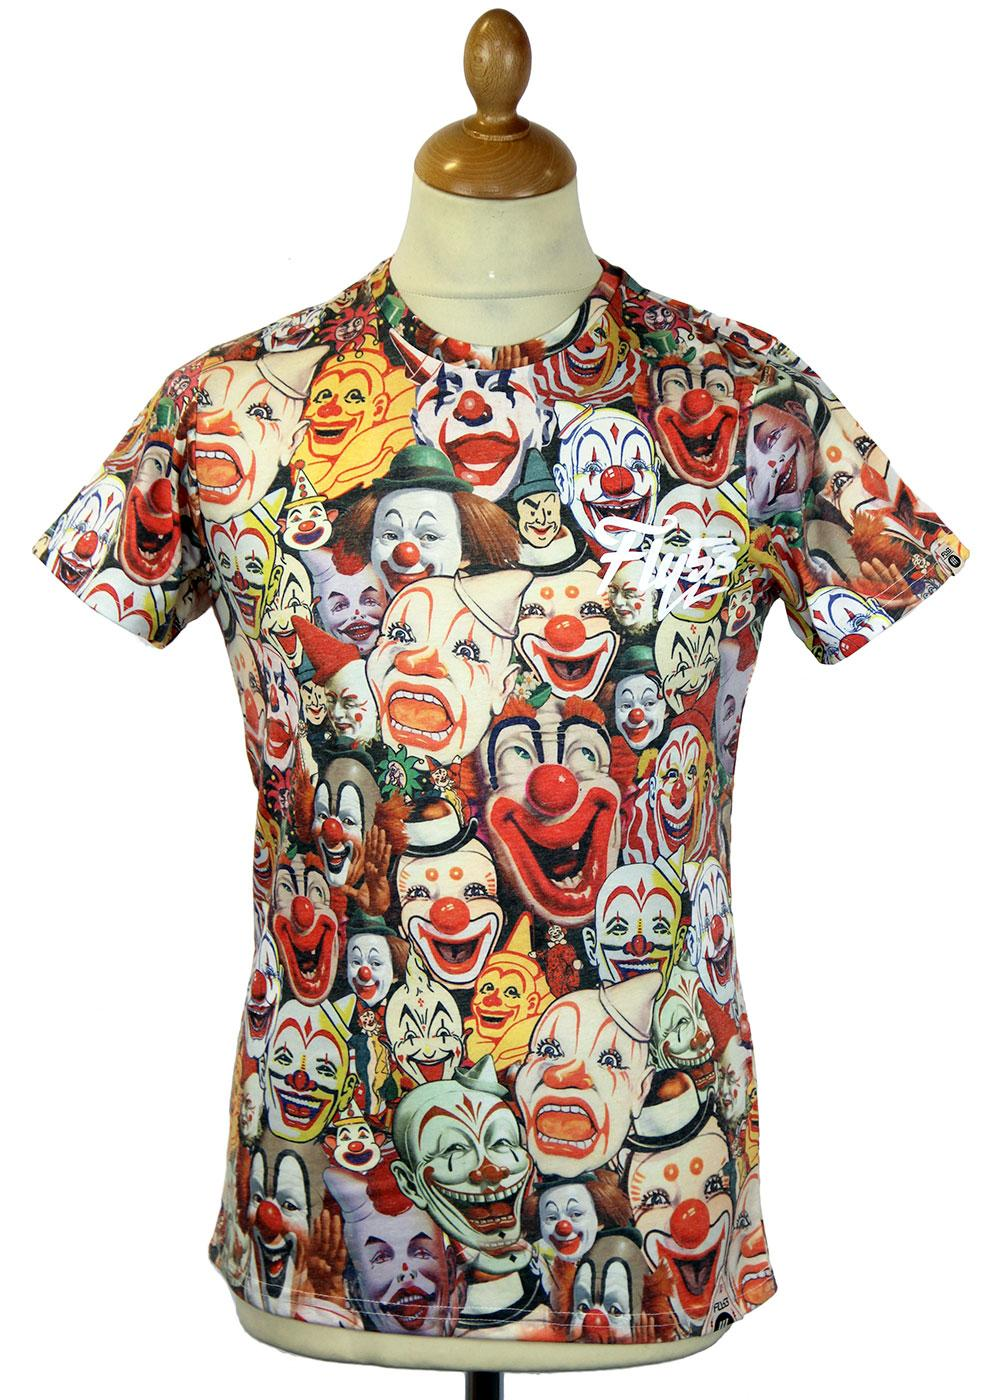 Pennywise FLY53 Retro 70s Indie Clown T-Shirt